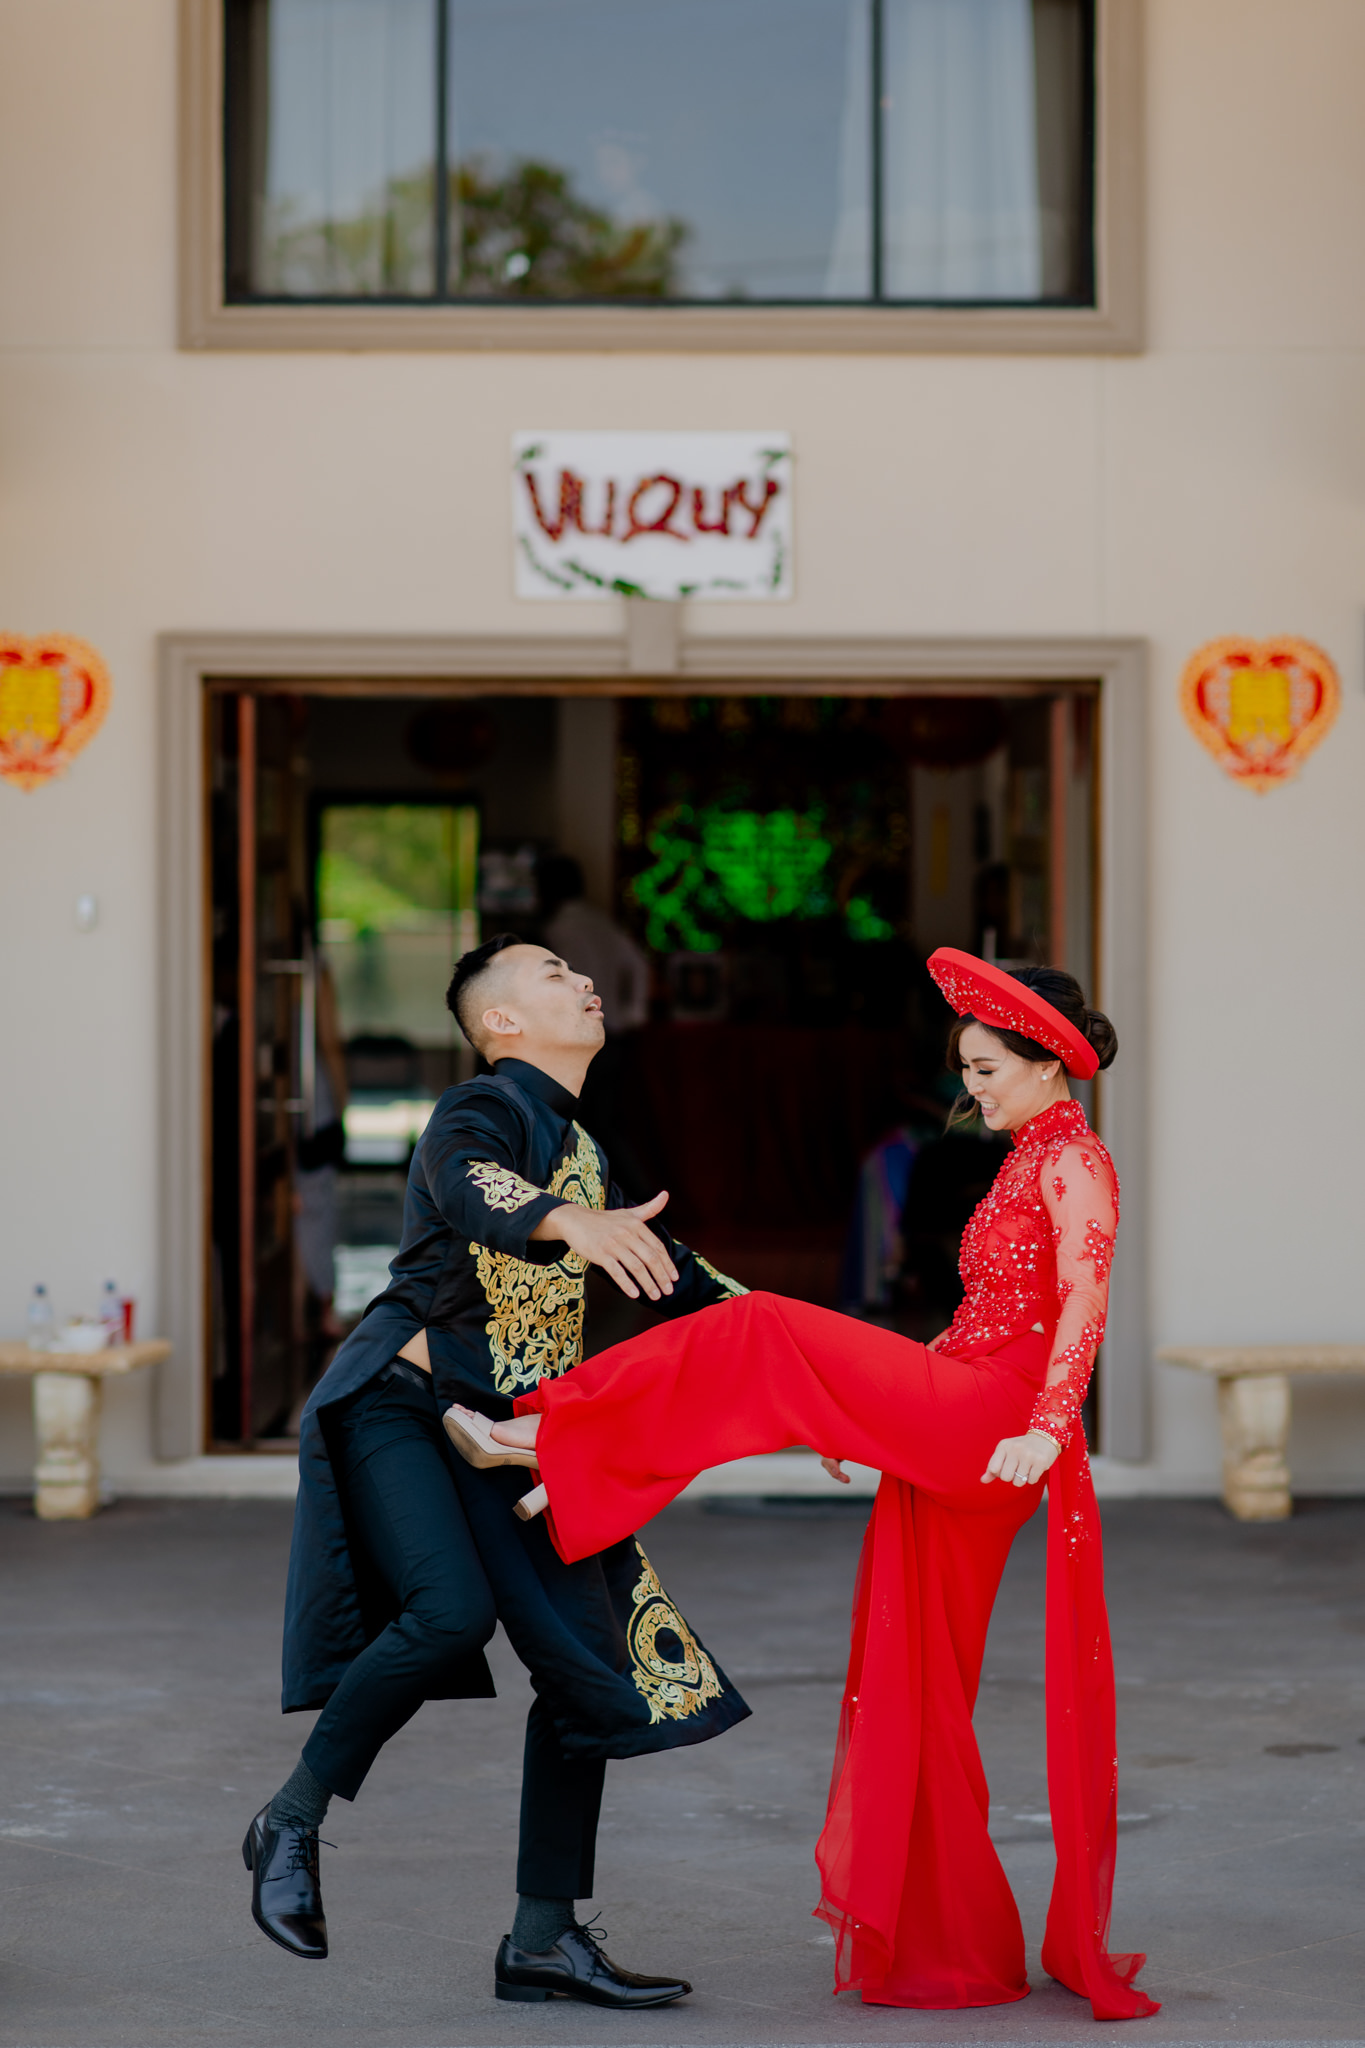 A couple wearing traditional Vietnamese clothing playfully fight in front of a house